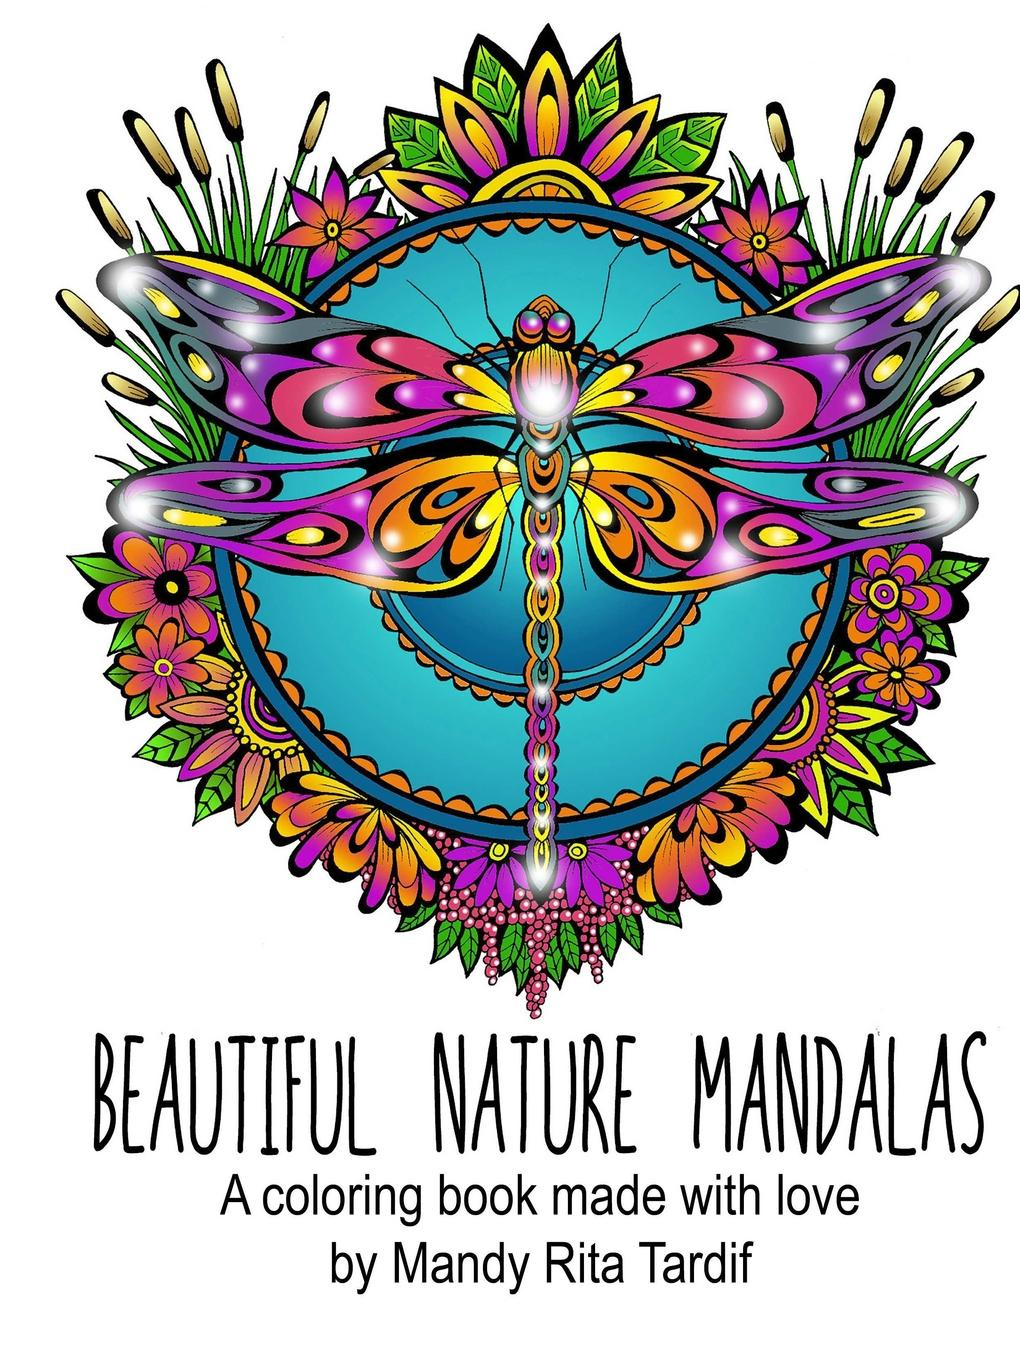 Mandy Rita Tardif Beautiful Nature Mandals A coloring book made with love something like a love song